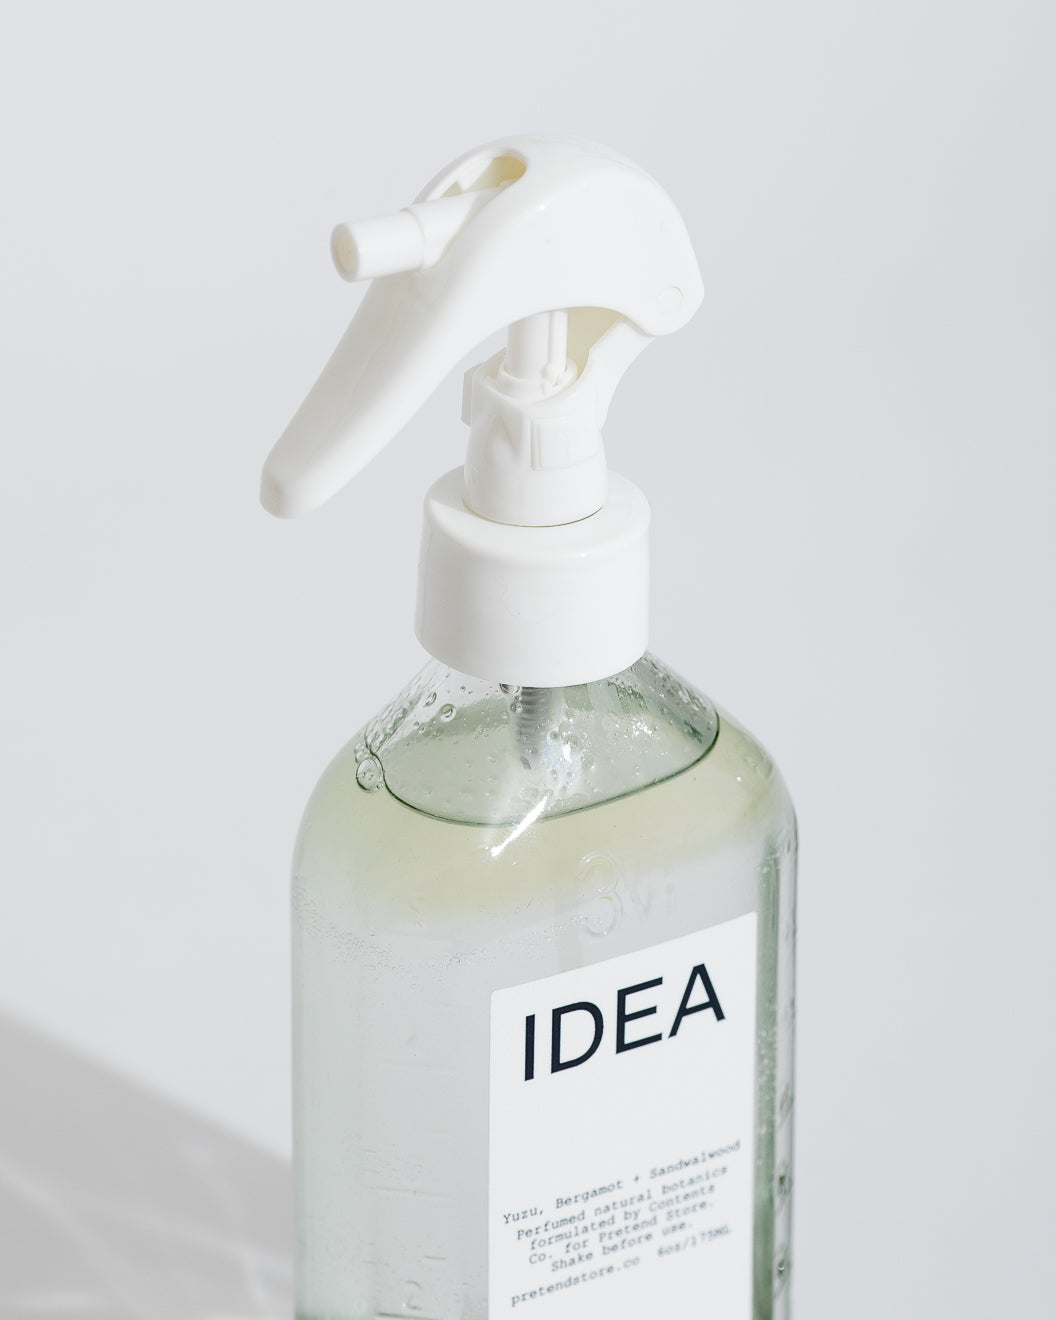 Idea Mist Room Spray